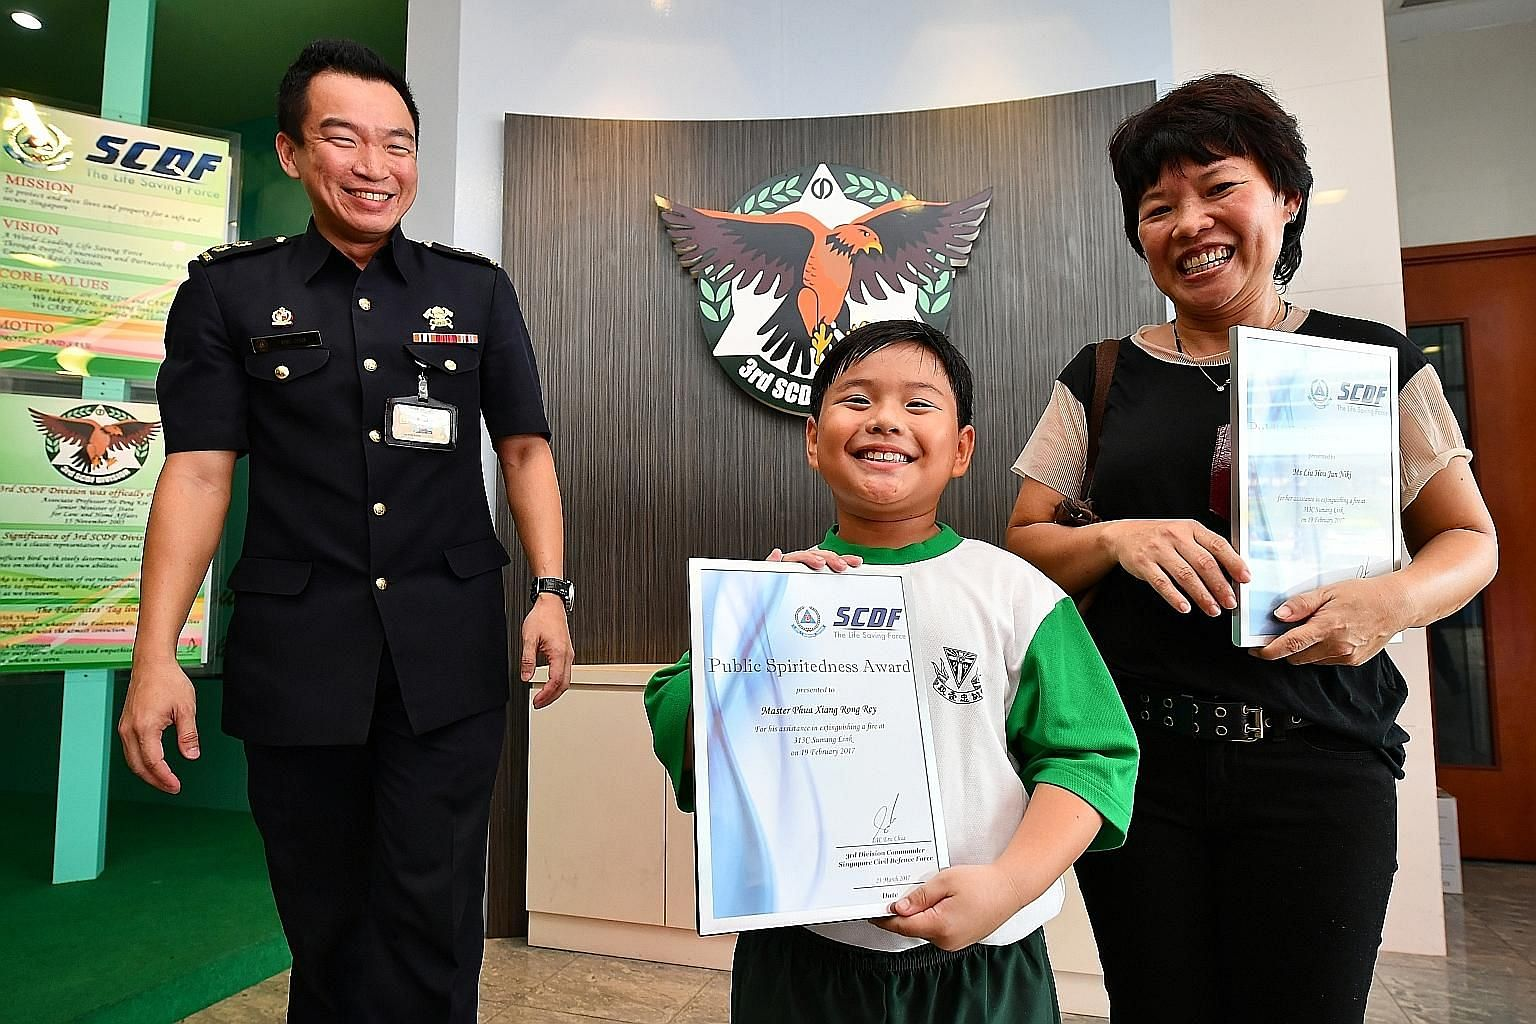 Lt-Col Chua, with Ms Liu and her son Phua Xiang Rong Rey. Every year, the SCDF responds to around 1,500 cases of rubbish chute fires.